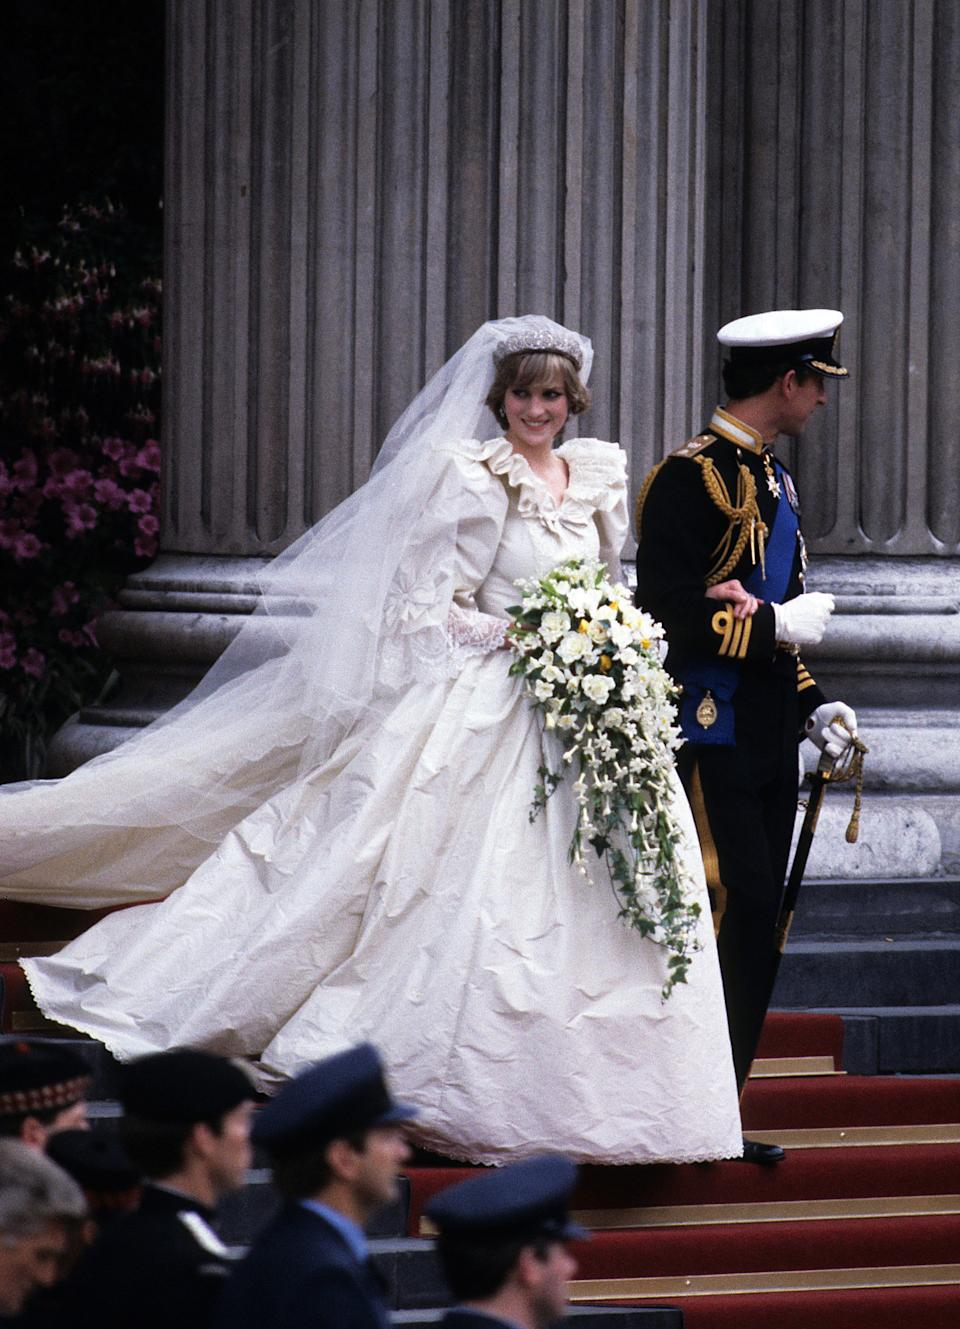 LONDON, ENGLAND - JULY 29: Prince Charles, Prince of Wales and Diana, Princess of Wales, wearing a wedding dress designed by David and Elizabeth Emanuel and the Spencer family Tiara, leave St. Paul's Cathedral following their wedding on July 29, 1981 in London, England. (Photo by Anwar Hussein/Getty Images)